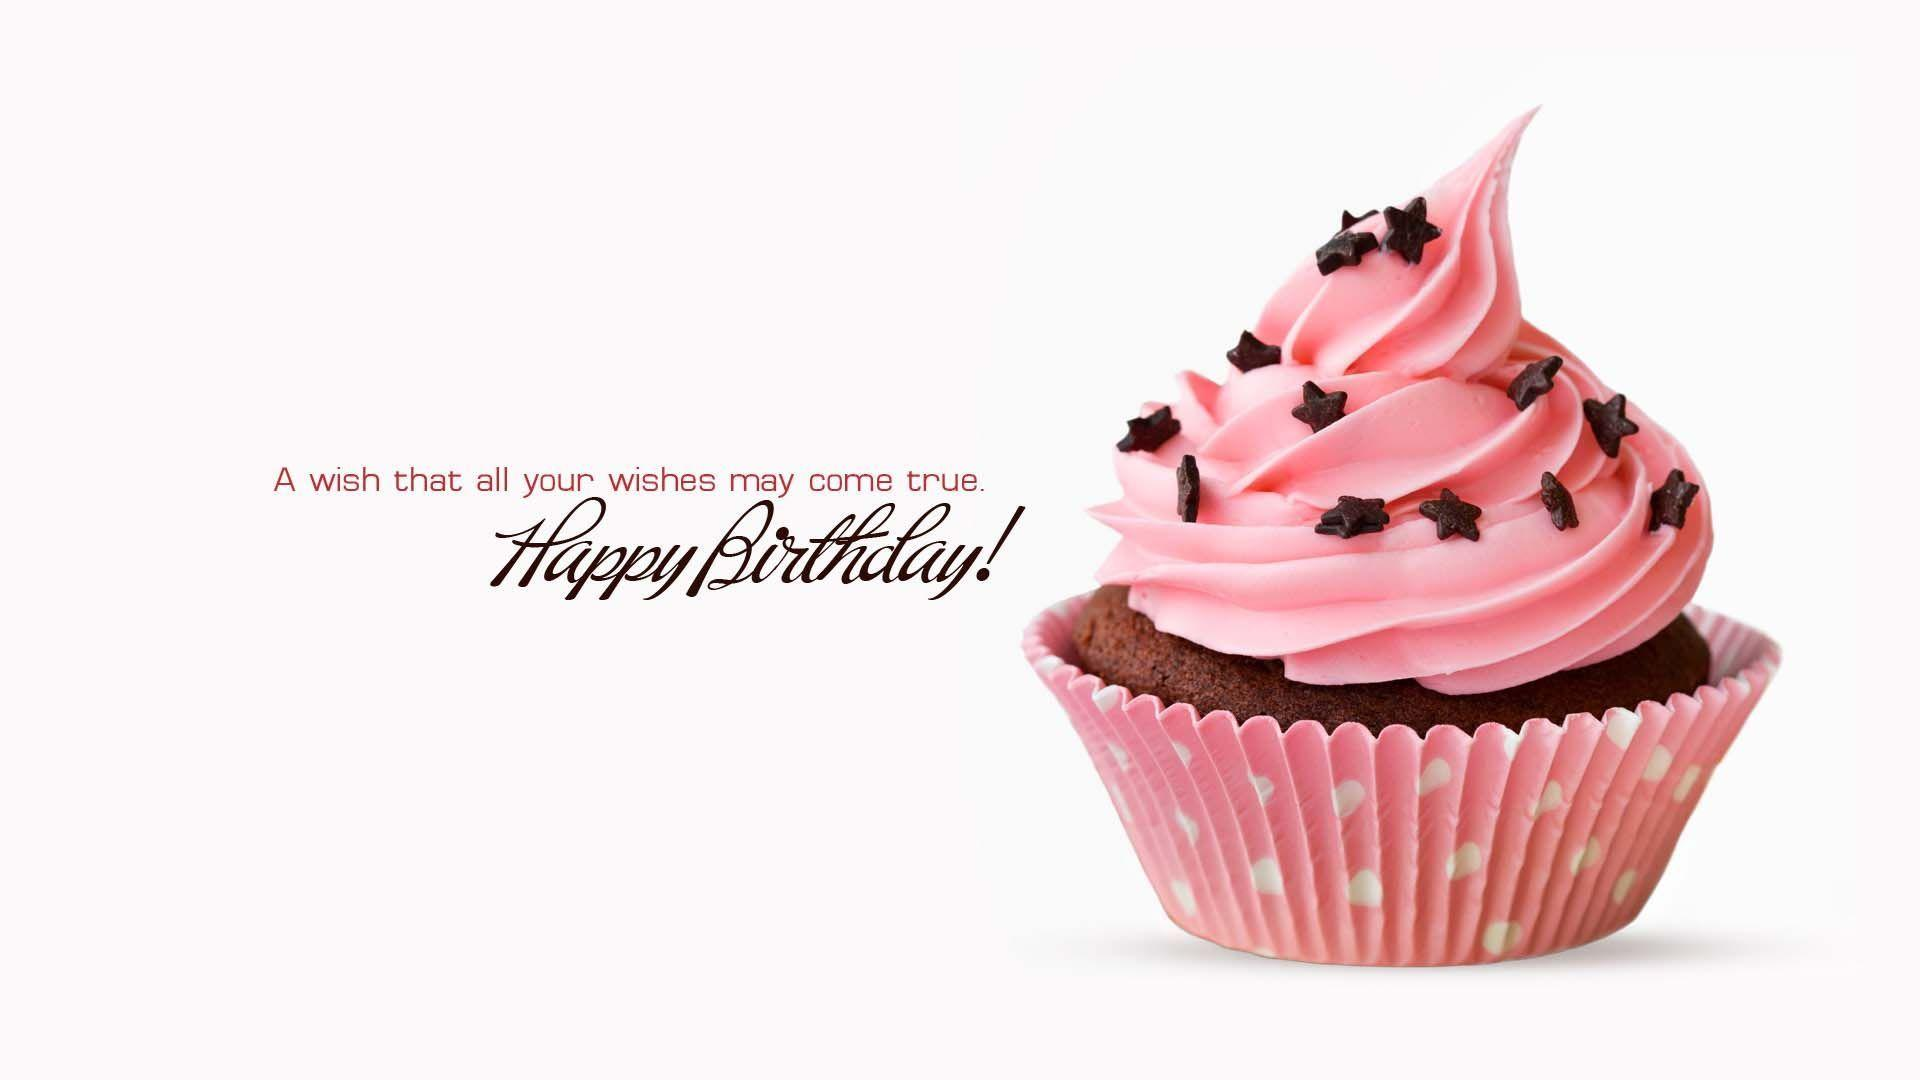 Cute Cake Wallpapers For Android Wallpaper Cave